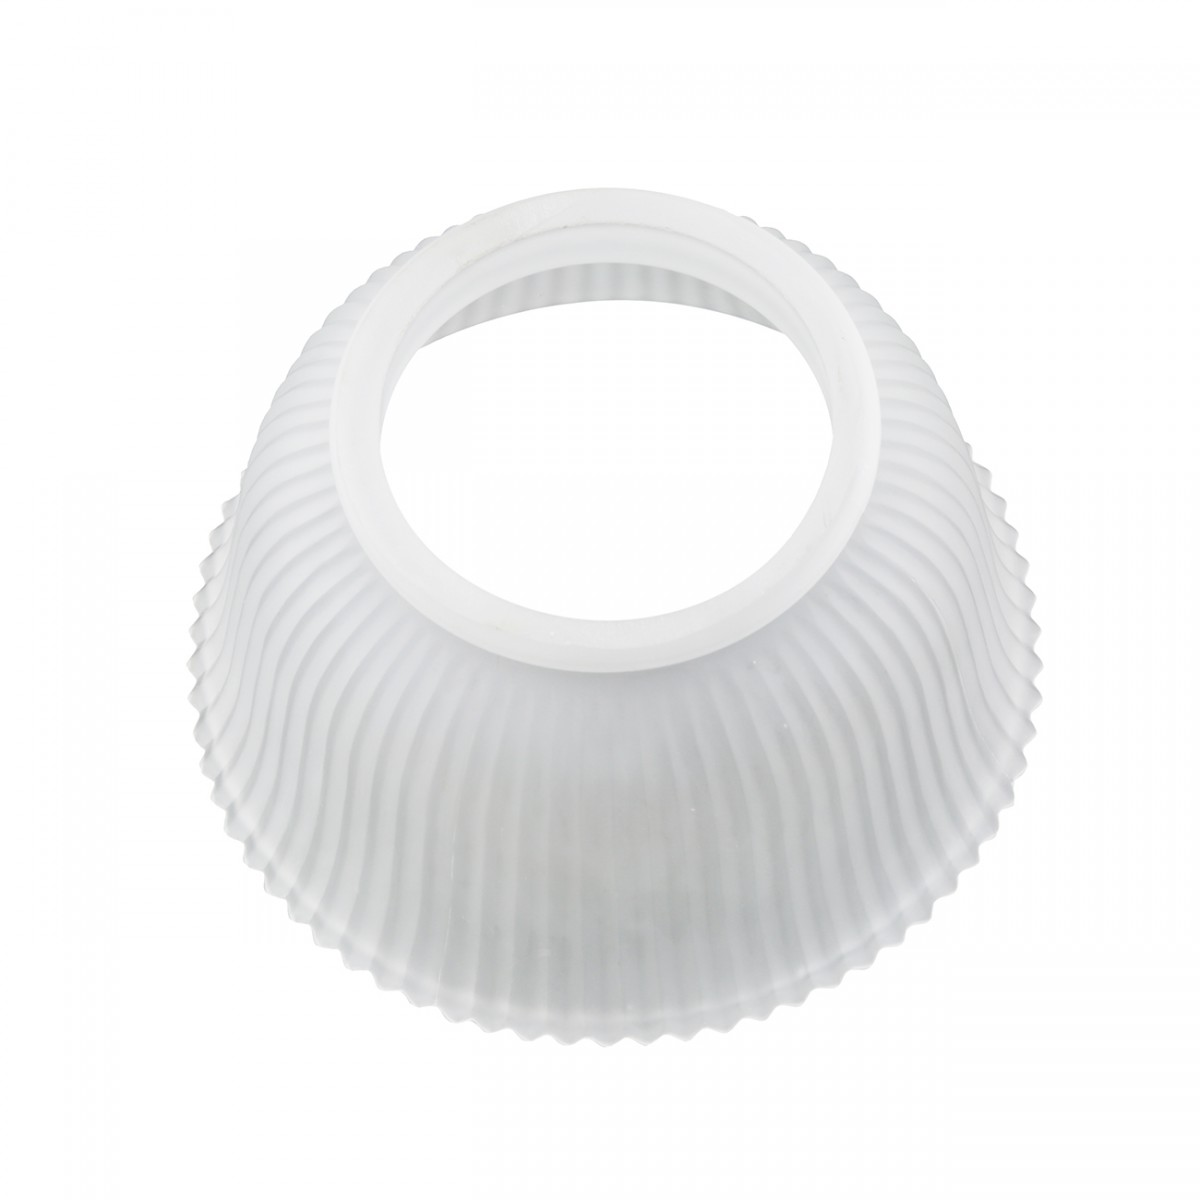 6 Lamp Shade White Glass Traditional 3 58 H x 4 Fitter Lamp Shades Lamp Shade Glass Lamp Shade